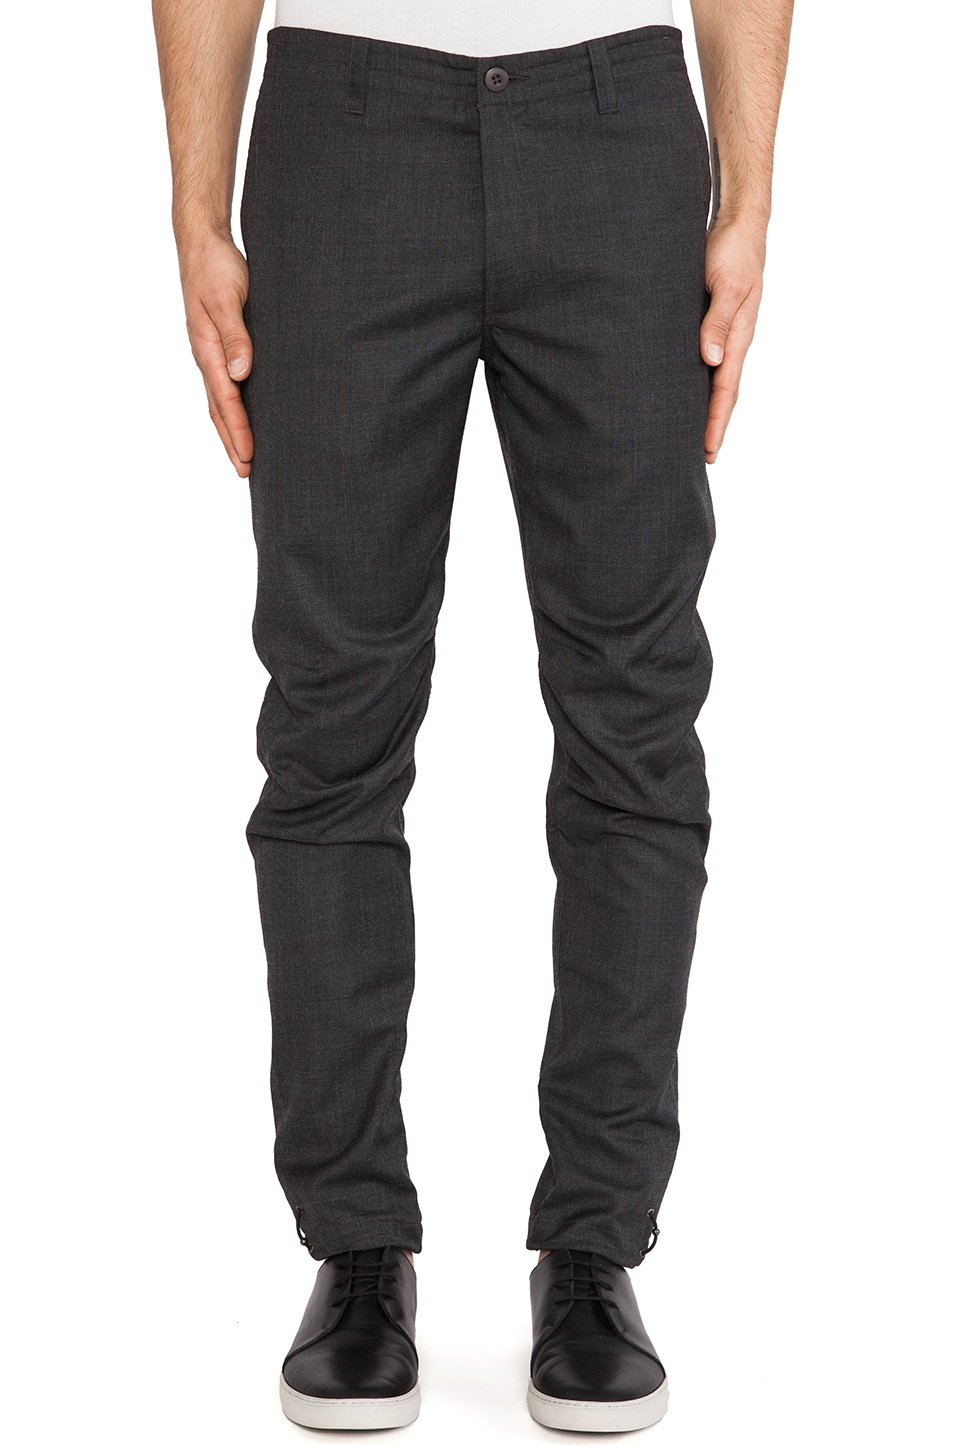 Maharishi Official Custom Pant in Charcoal